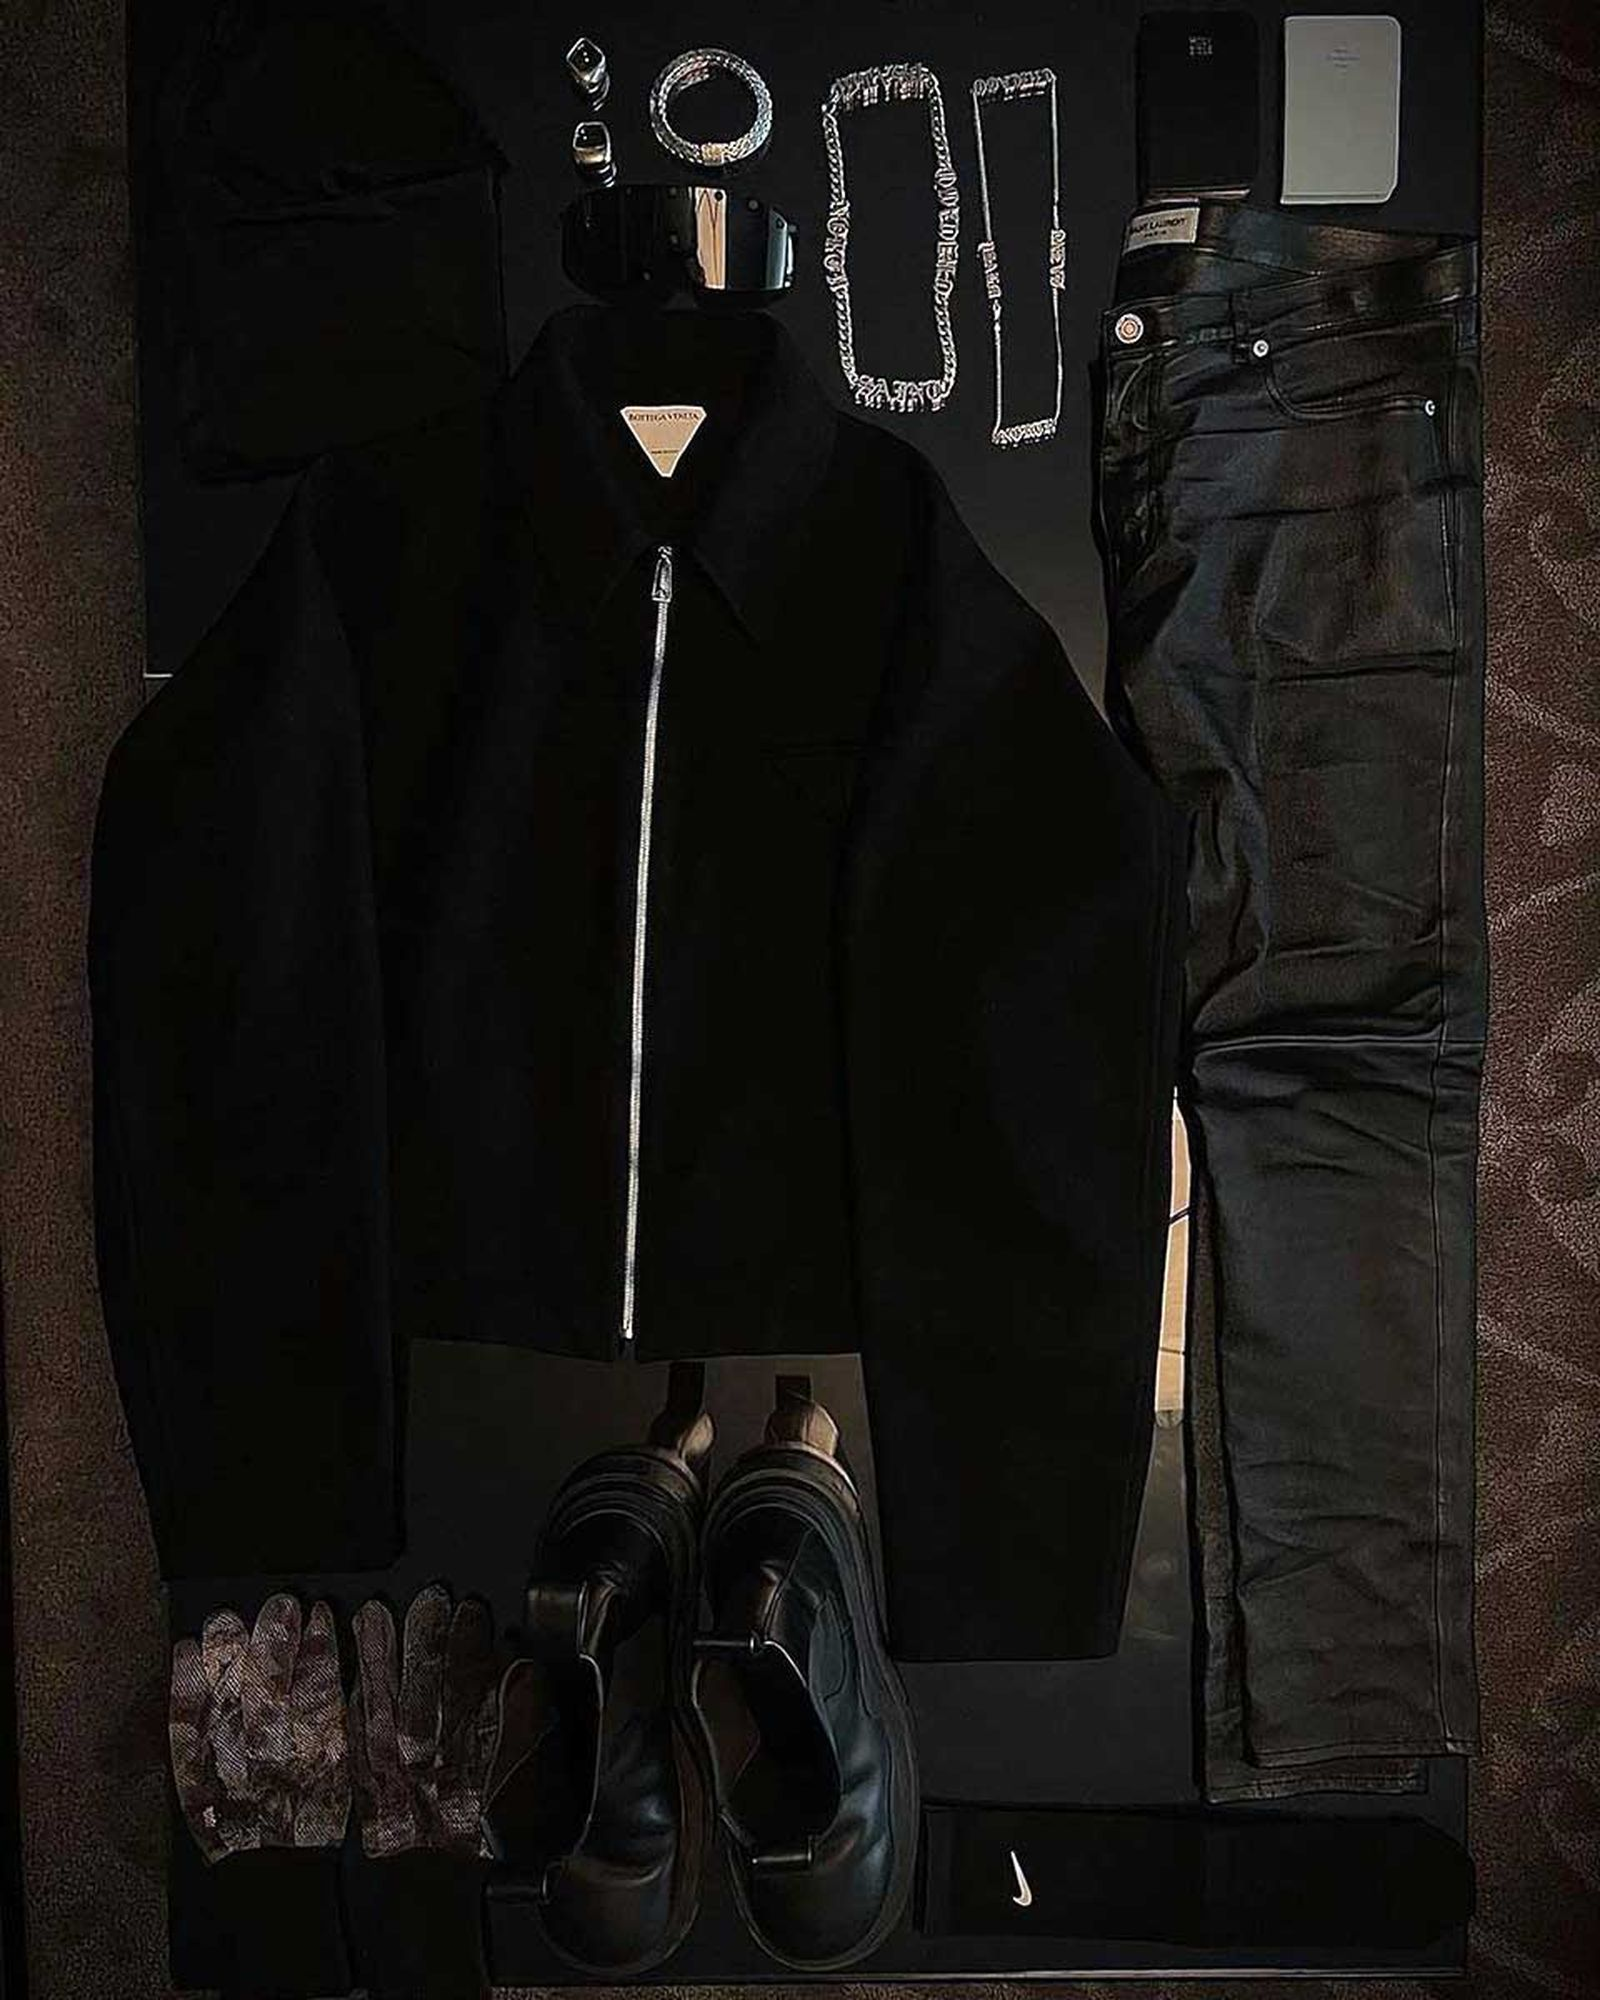 kanye-west-donda-fit-pic-outfit-buy-2